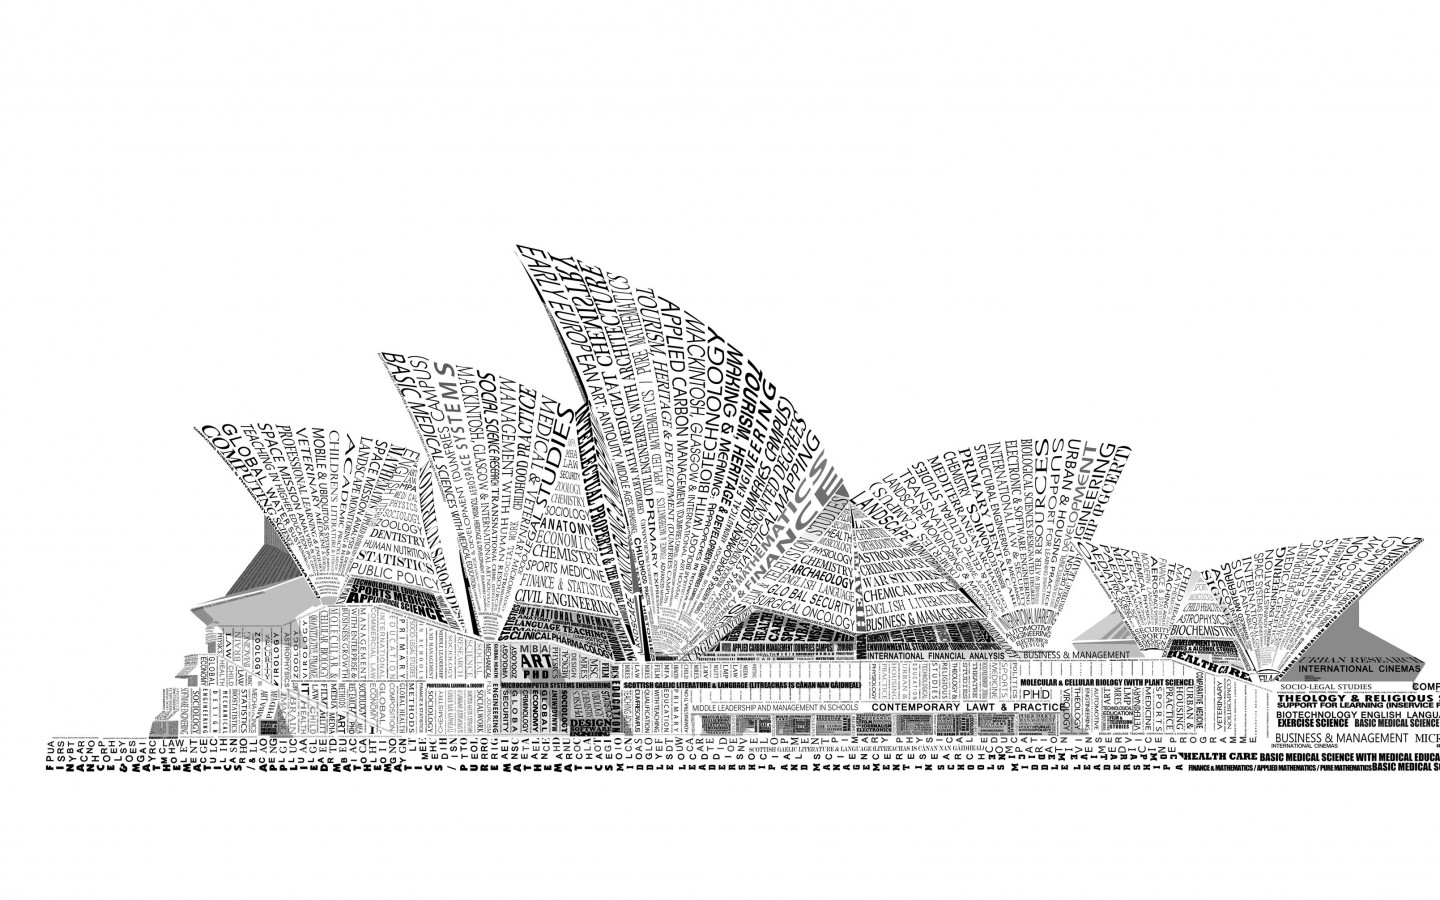 Opera House Sydney Typography Wallpaper for Desktop 1440x900